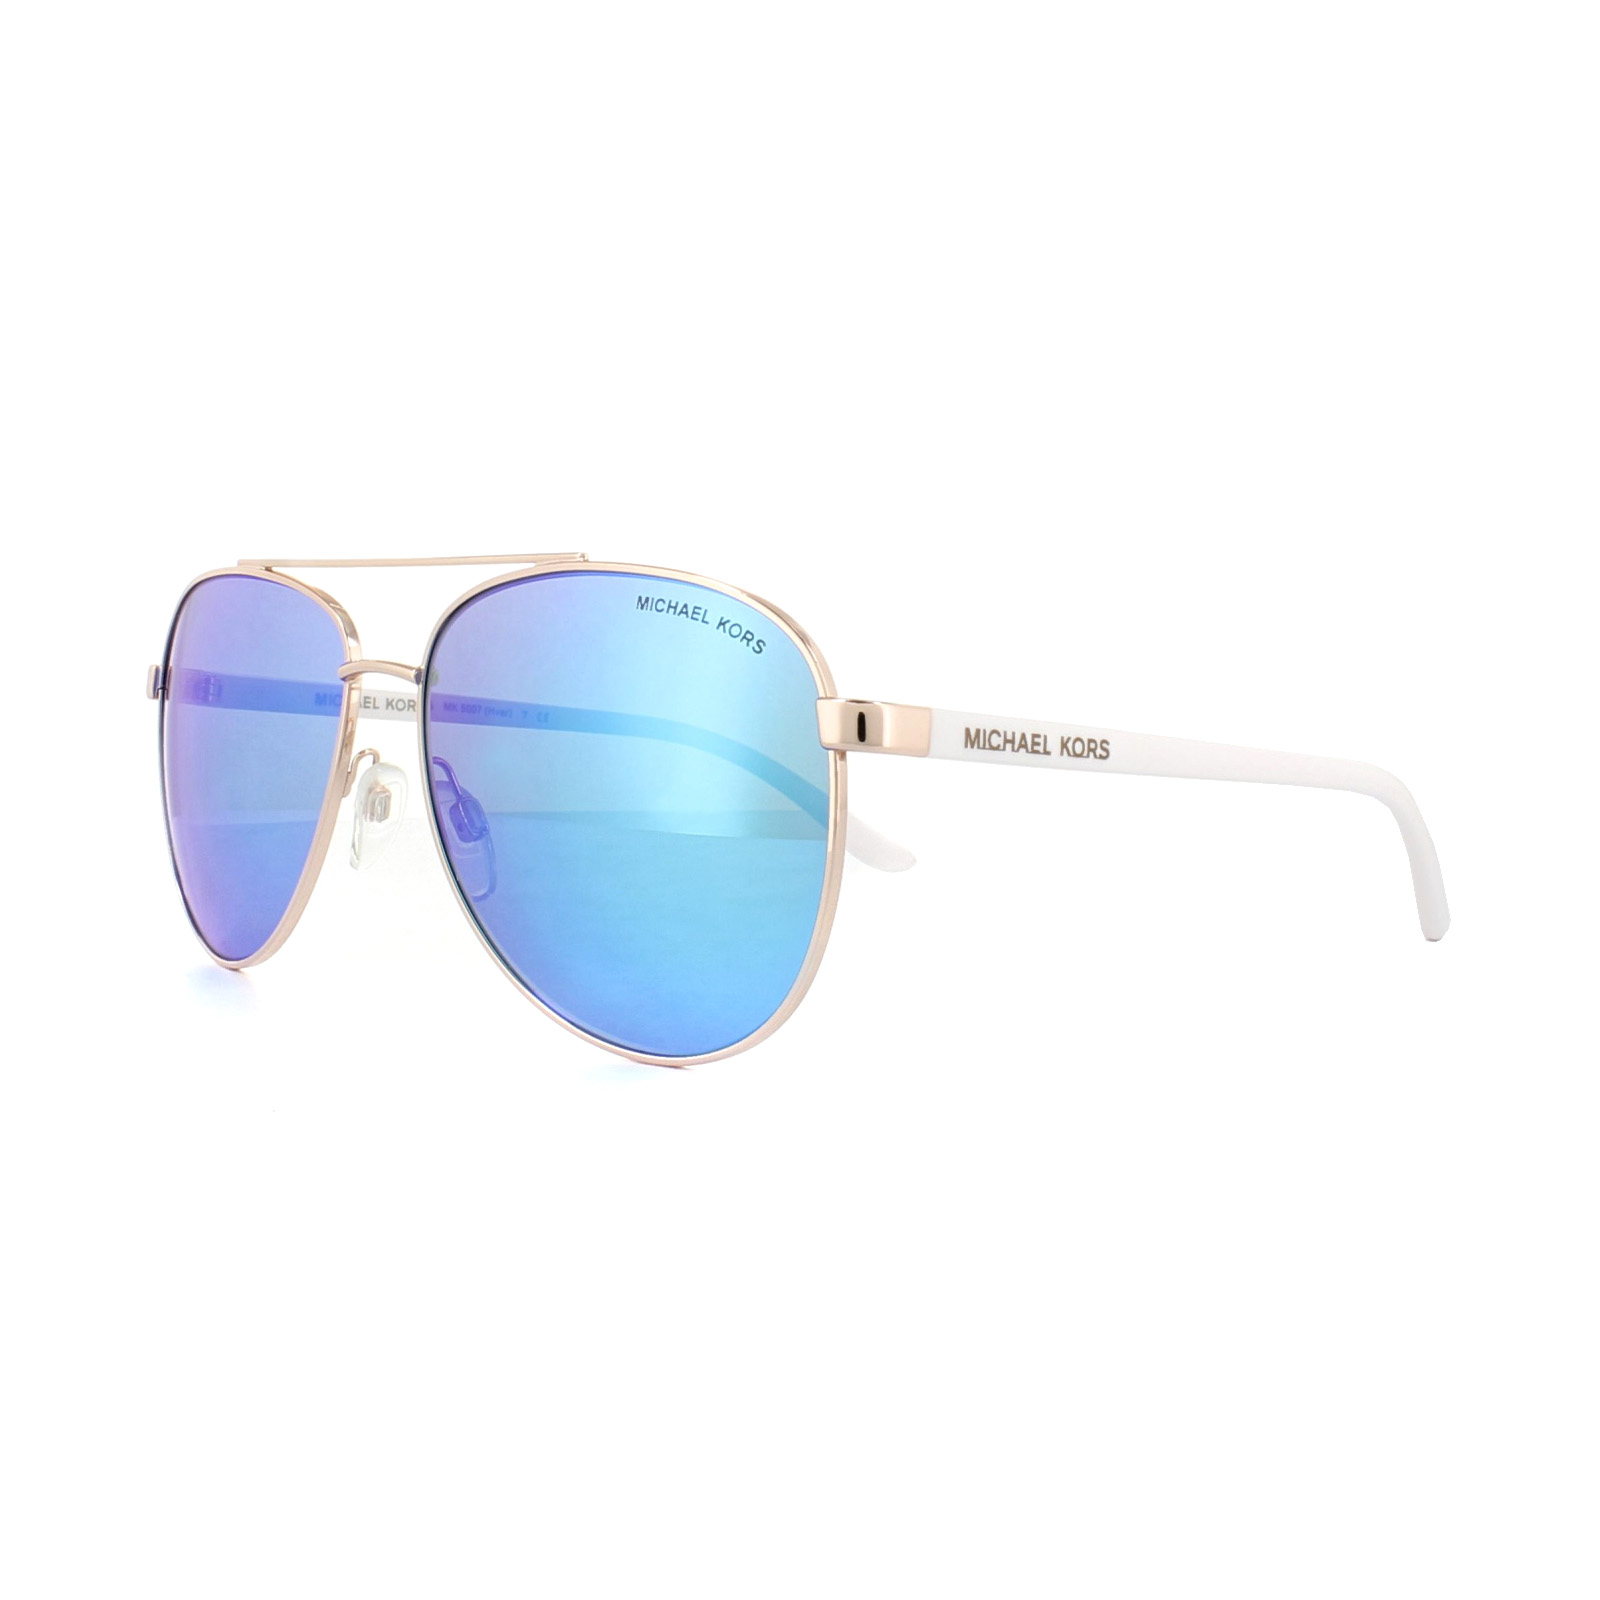 417842fb0cab Sentinel Michael Kors Sunglasses Hvar 5007 104525 Rose Gold White Blue  Mirror